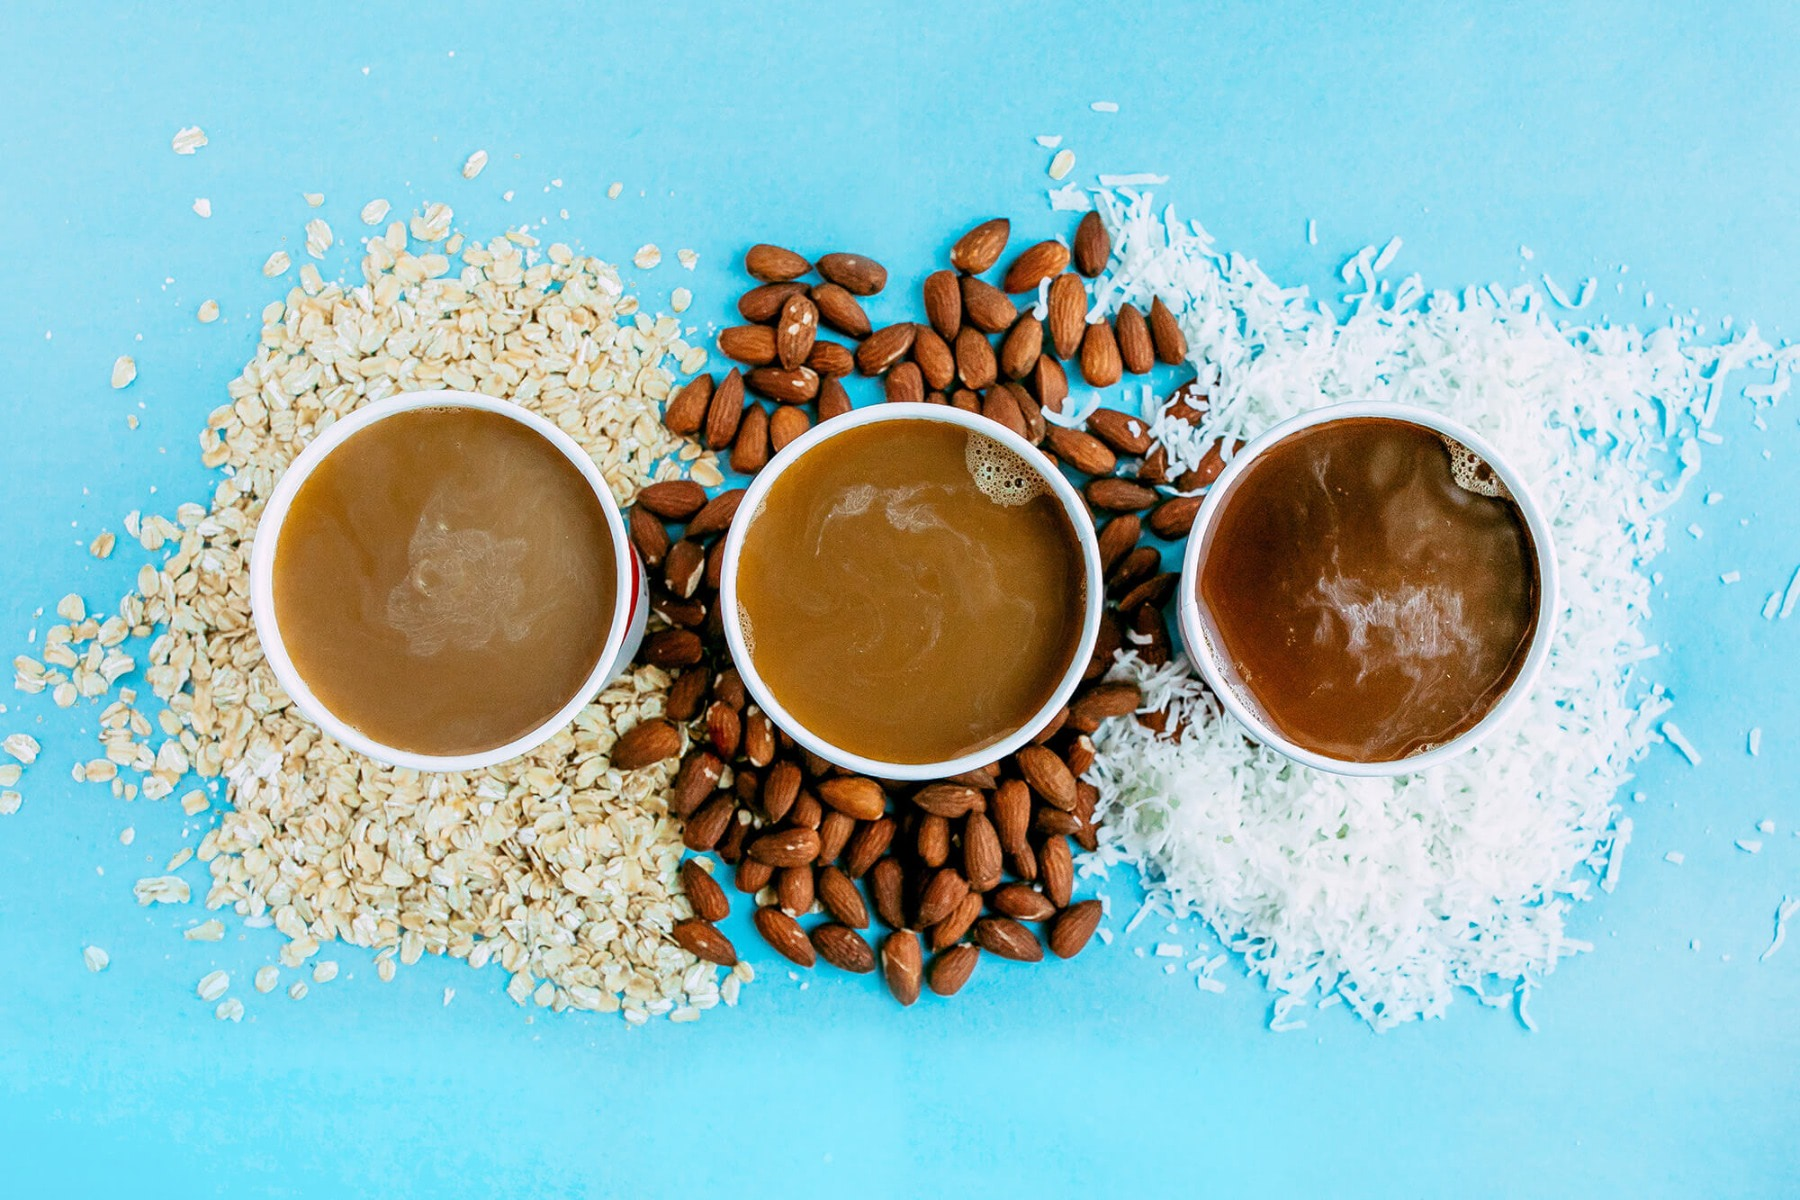 Top shot of three cups of coffee sitting on blue table with oats, almonds and coconut